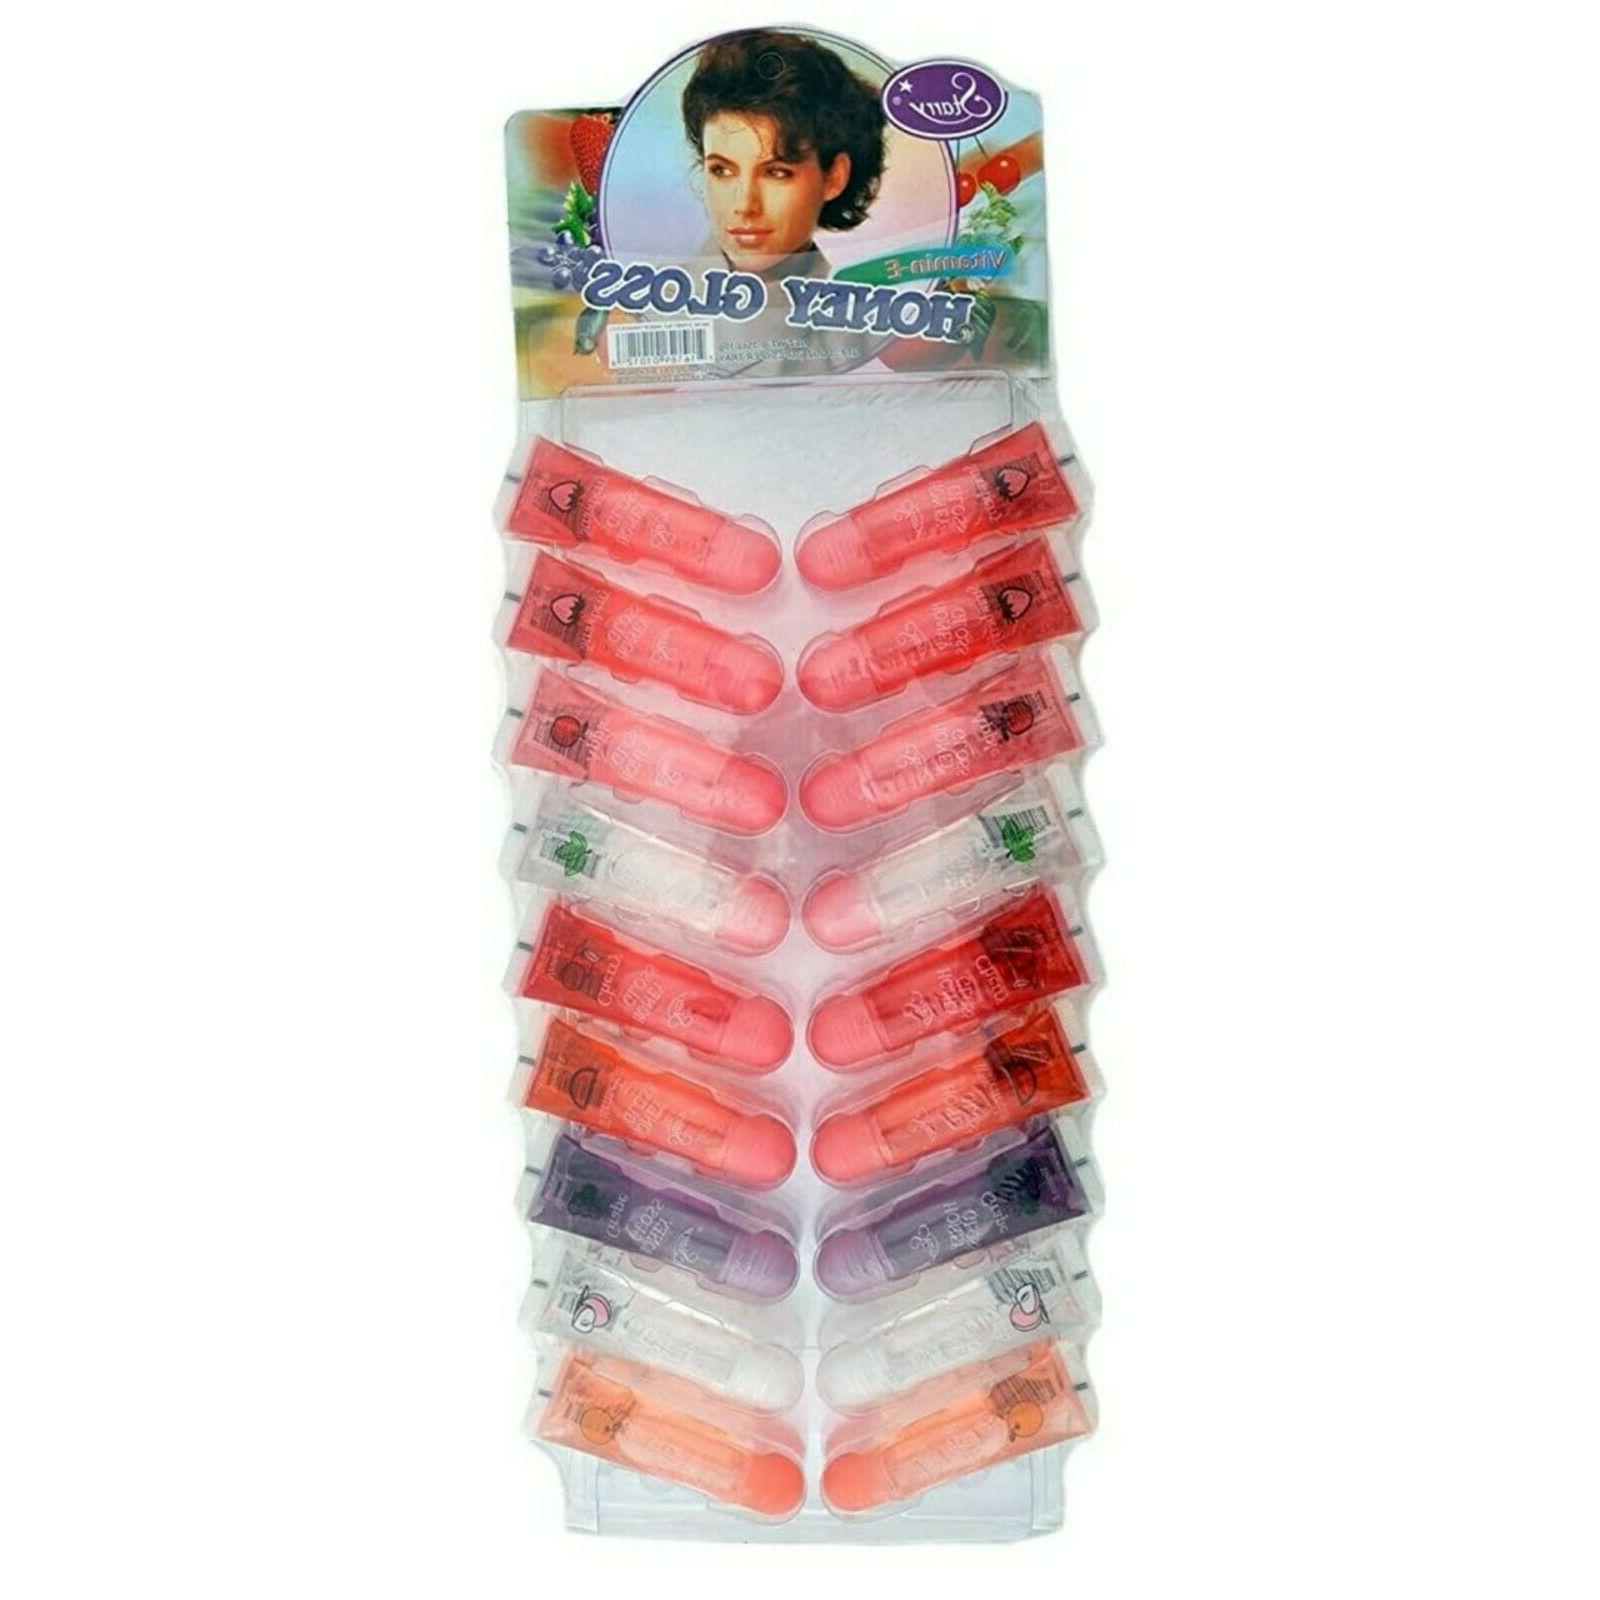 Starry Fruit Lip Gloss Set - All 8 PCs! Vitamin